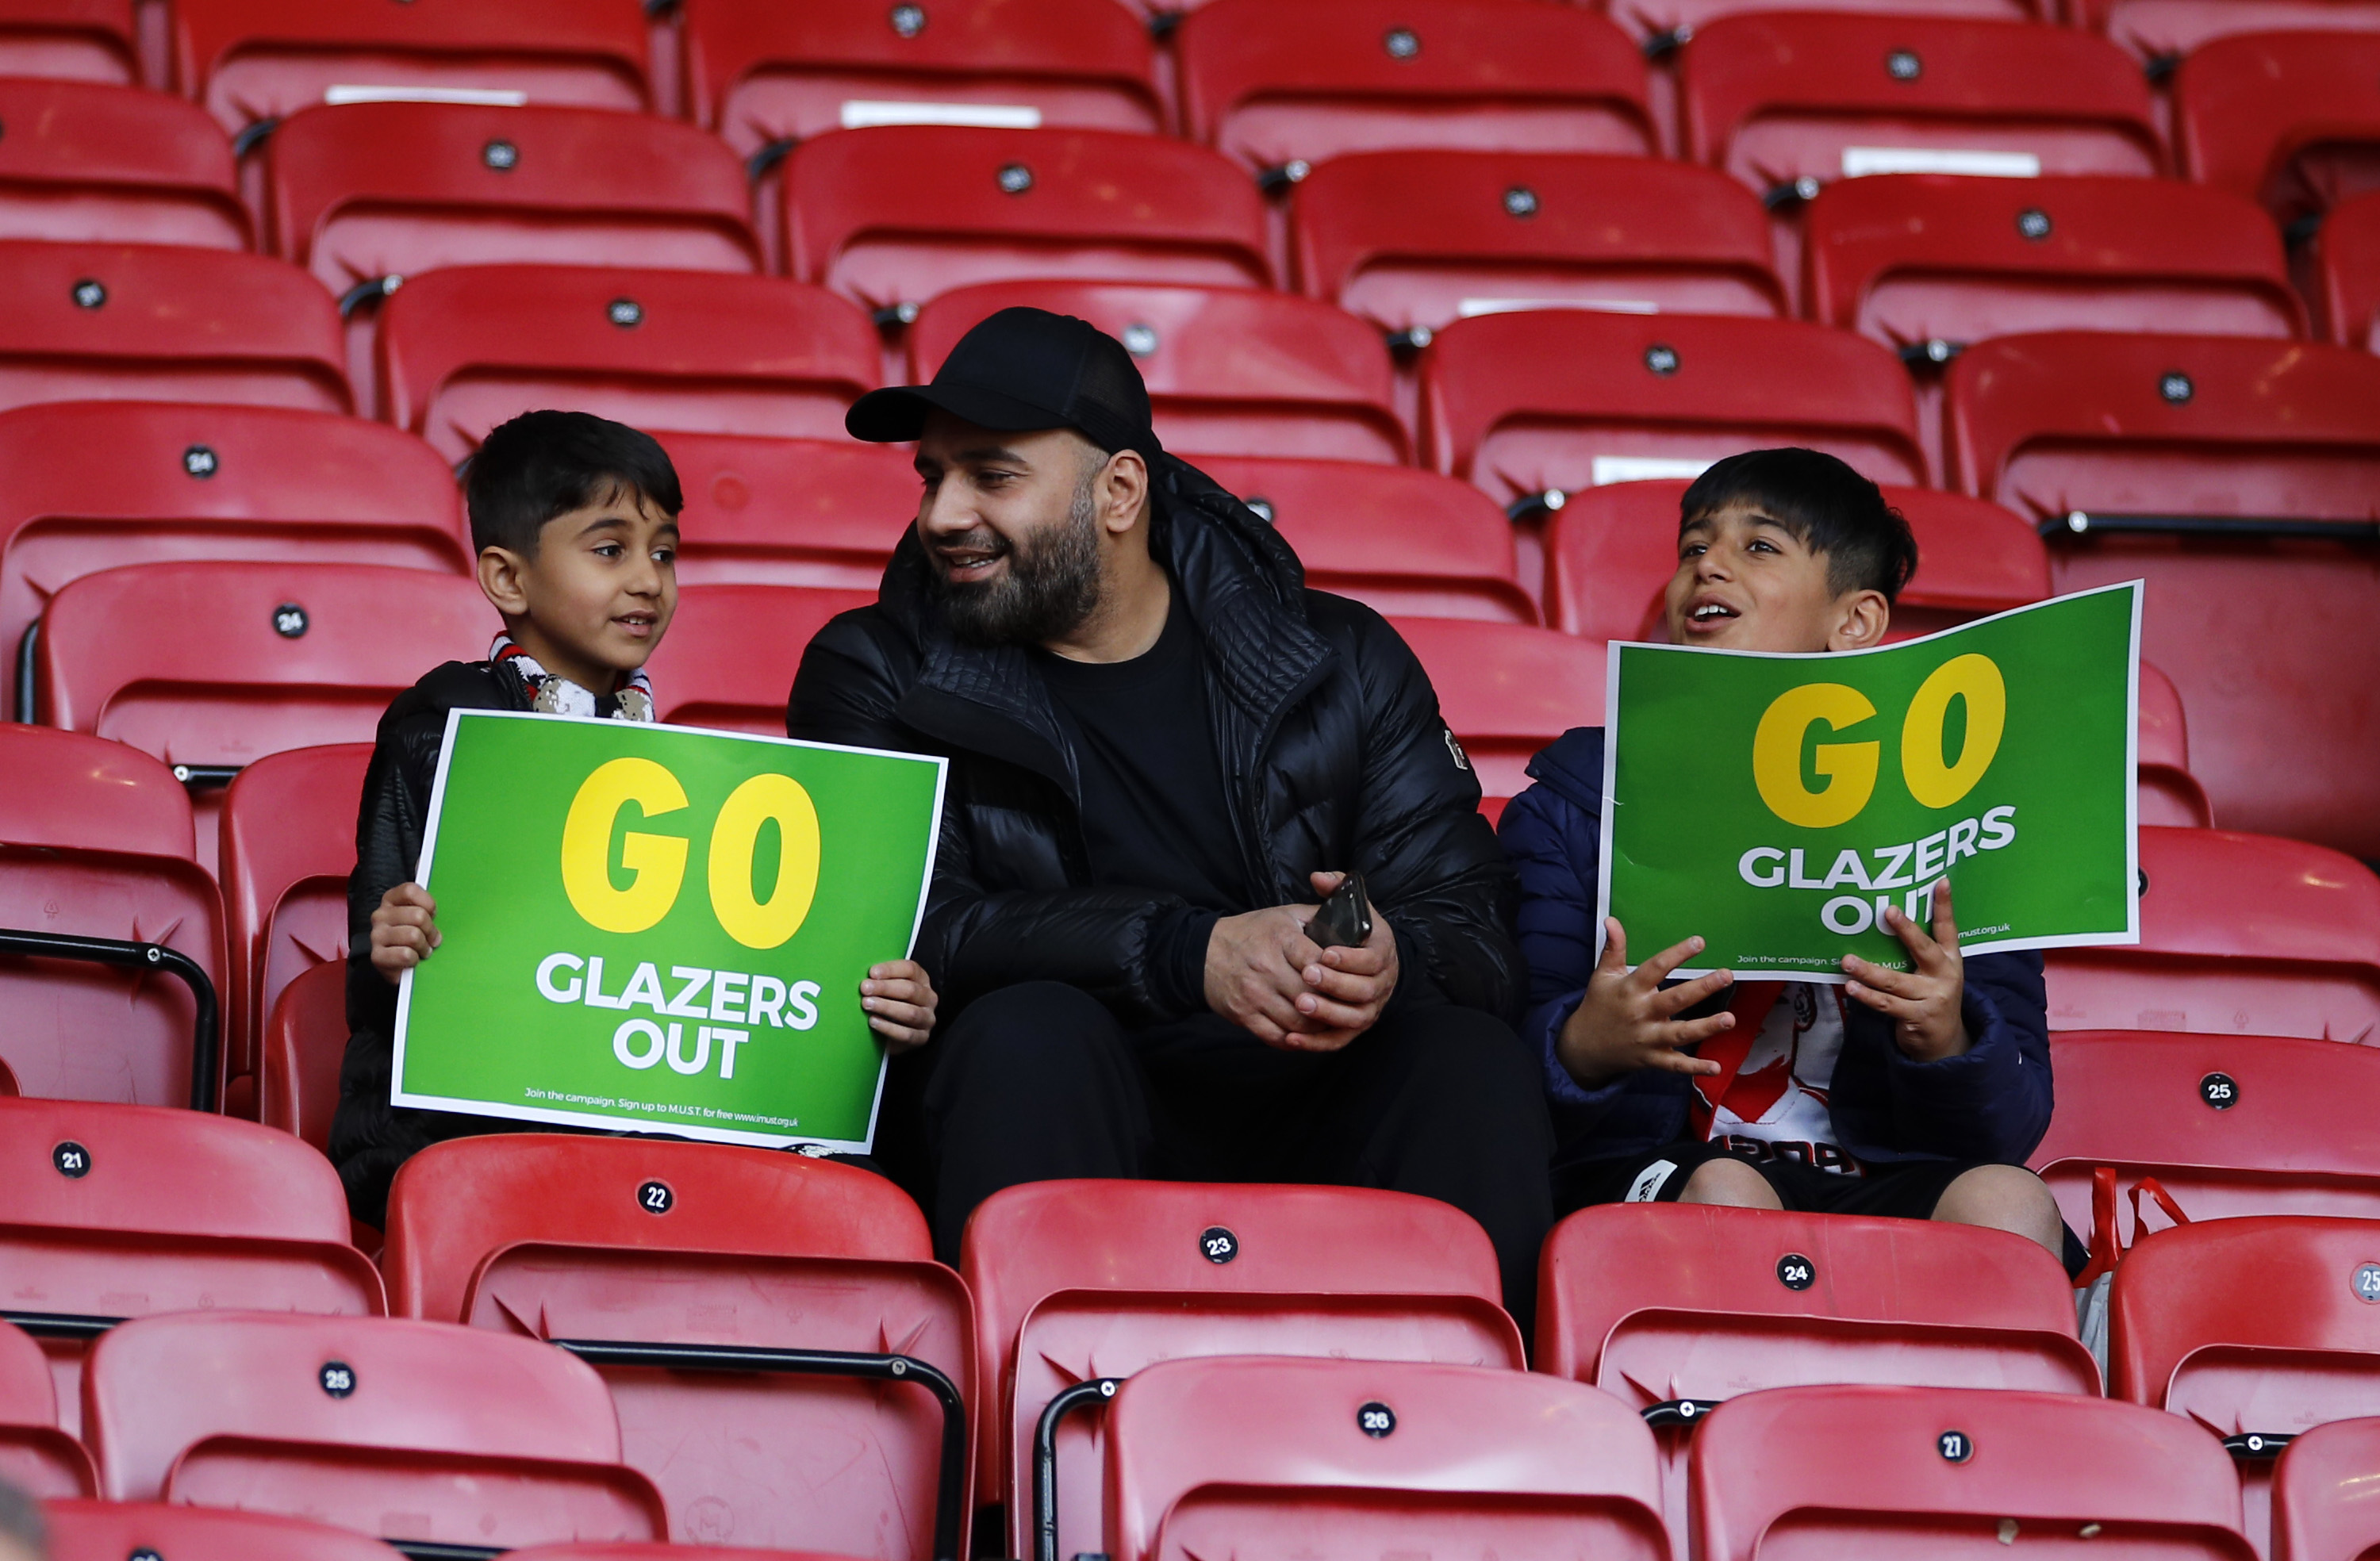 <p>MANCHESTER, ENGLAND - MAY 18: Fans of Manchester United look on from their seat inside of the stadium whilst holding a protest placard ahead of the Premier League match between Manchester United and Fulham at Old Trafford on May 18, 2021 in Manchester, England. A limited number of fans will be allowed into Premier League stadiums as Coronavirus restrictions begin to ease in the UK following the COVID-19 pandemic. (Photo by Phil Noble - Pool/Getty Images)</p>